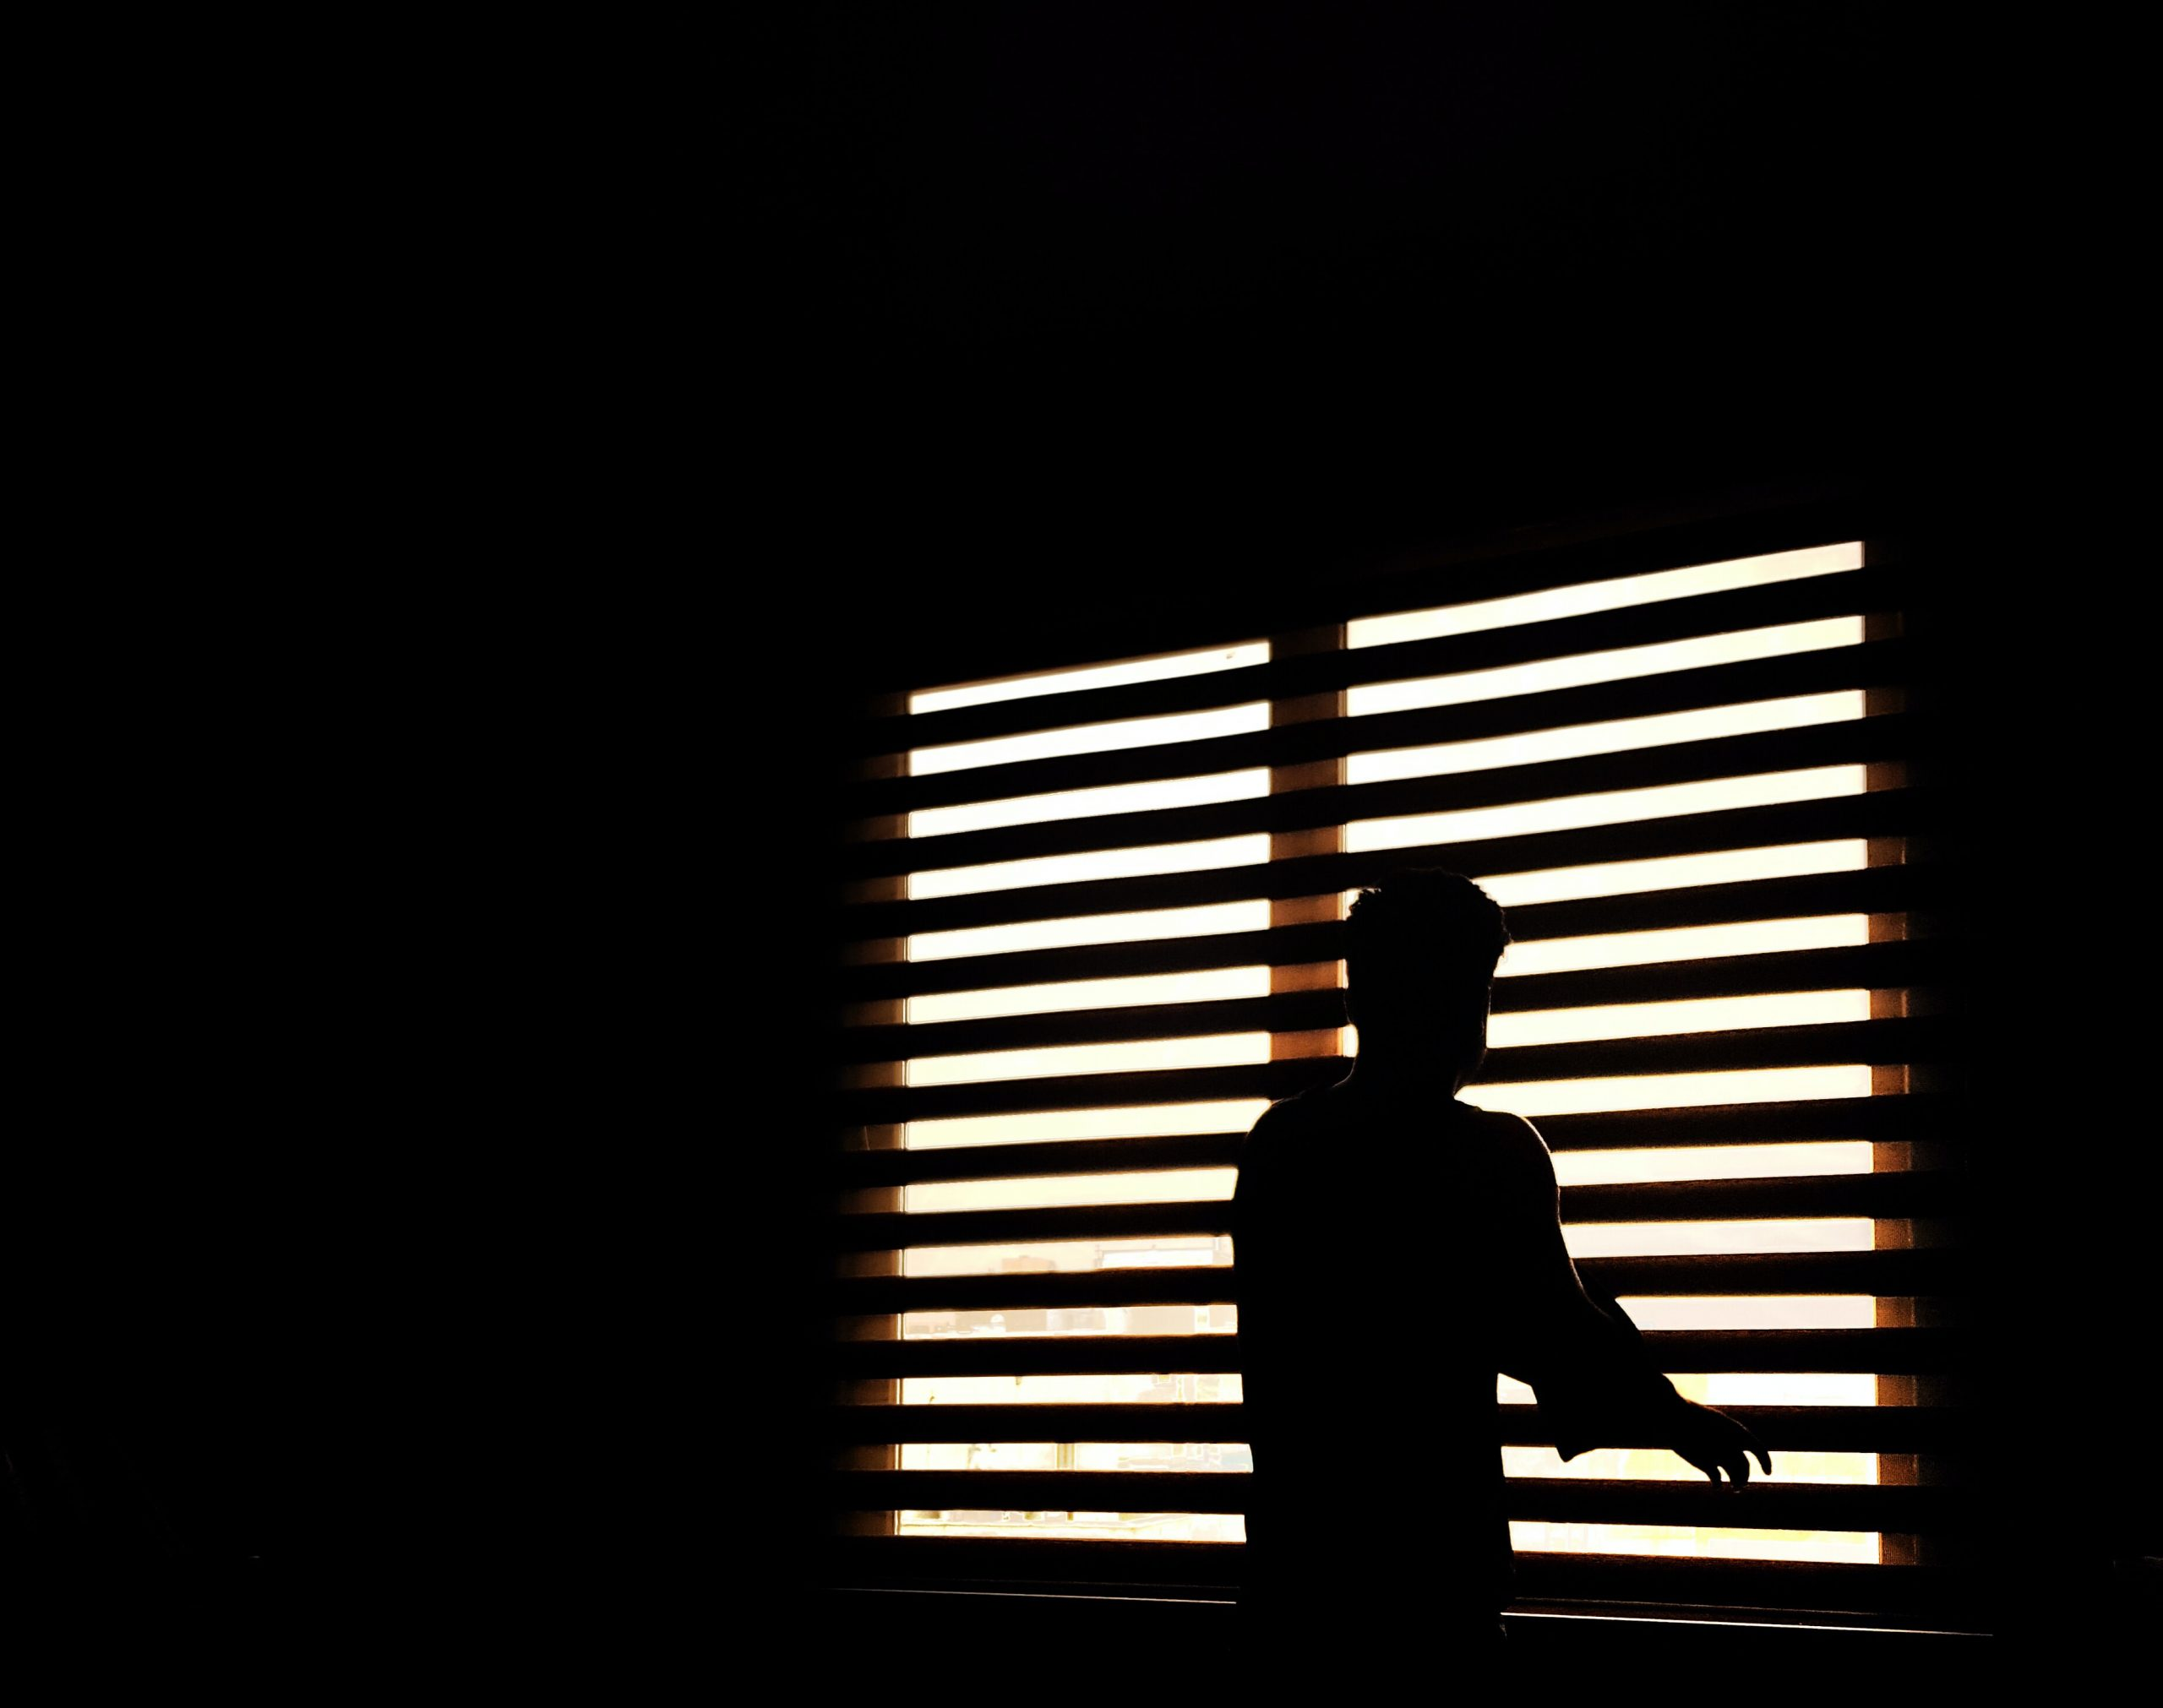 Silhouette of a man at window shades in the dark.